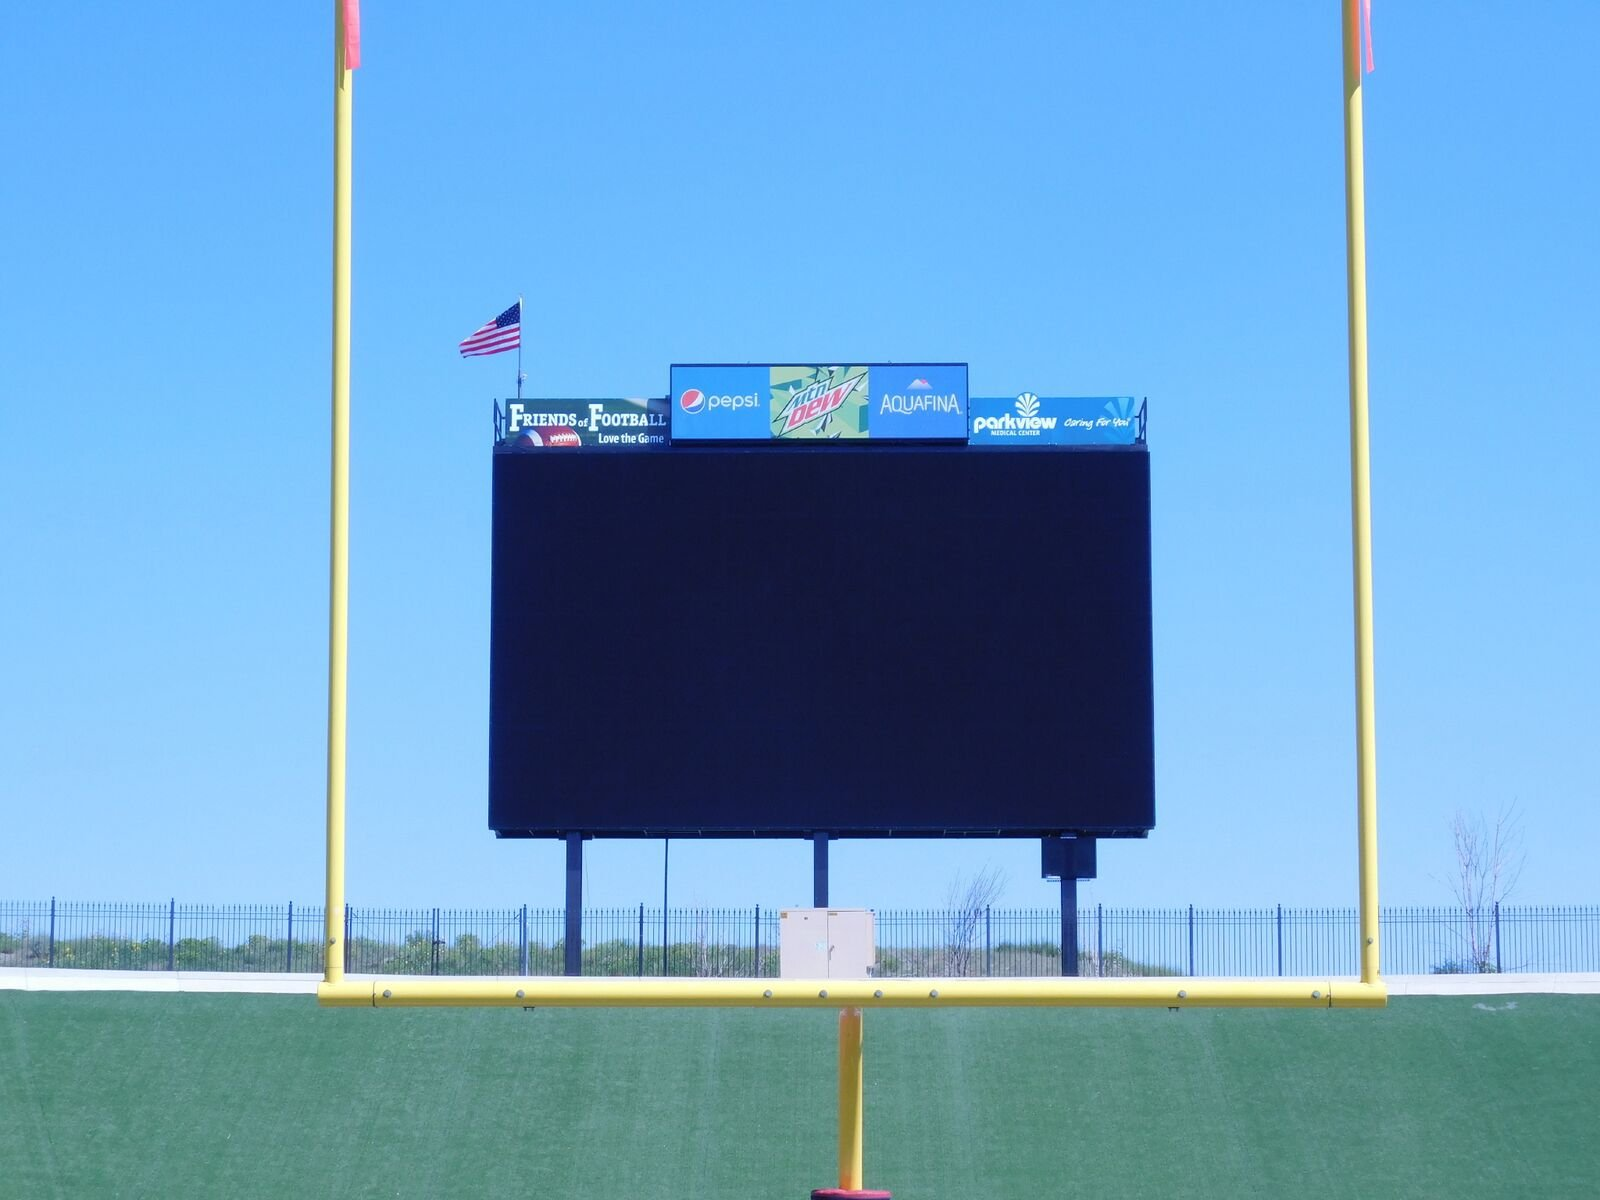 Fans can check out the new scoreboard at the Neta and Eddie DeRose ThunderBowl at Colorado State University-Pueblo Aug. 31st.